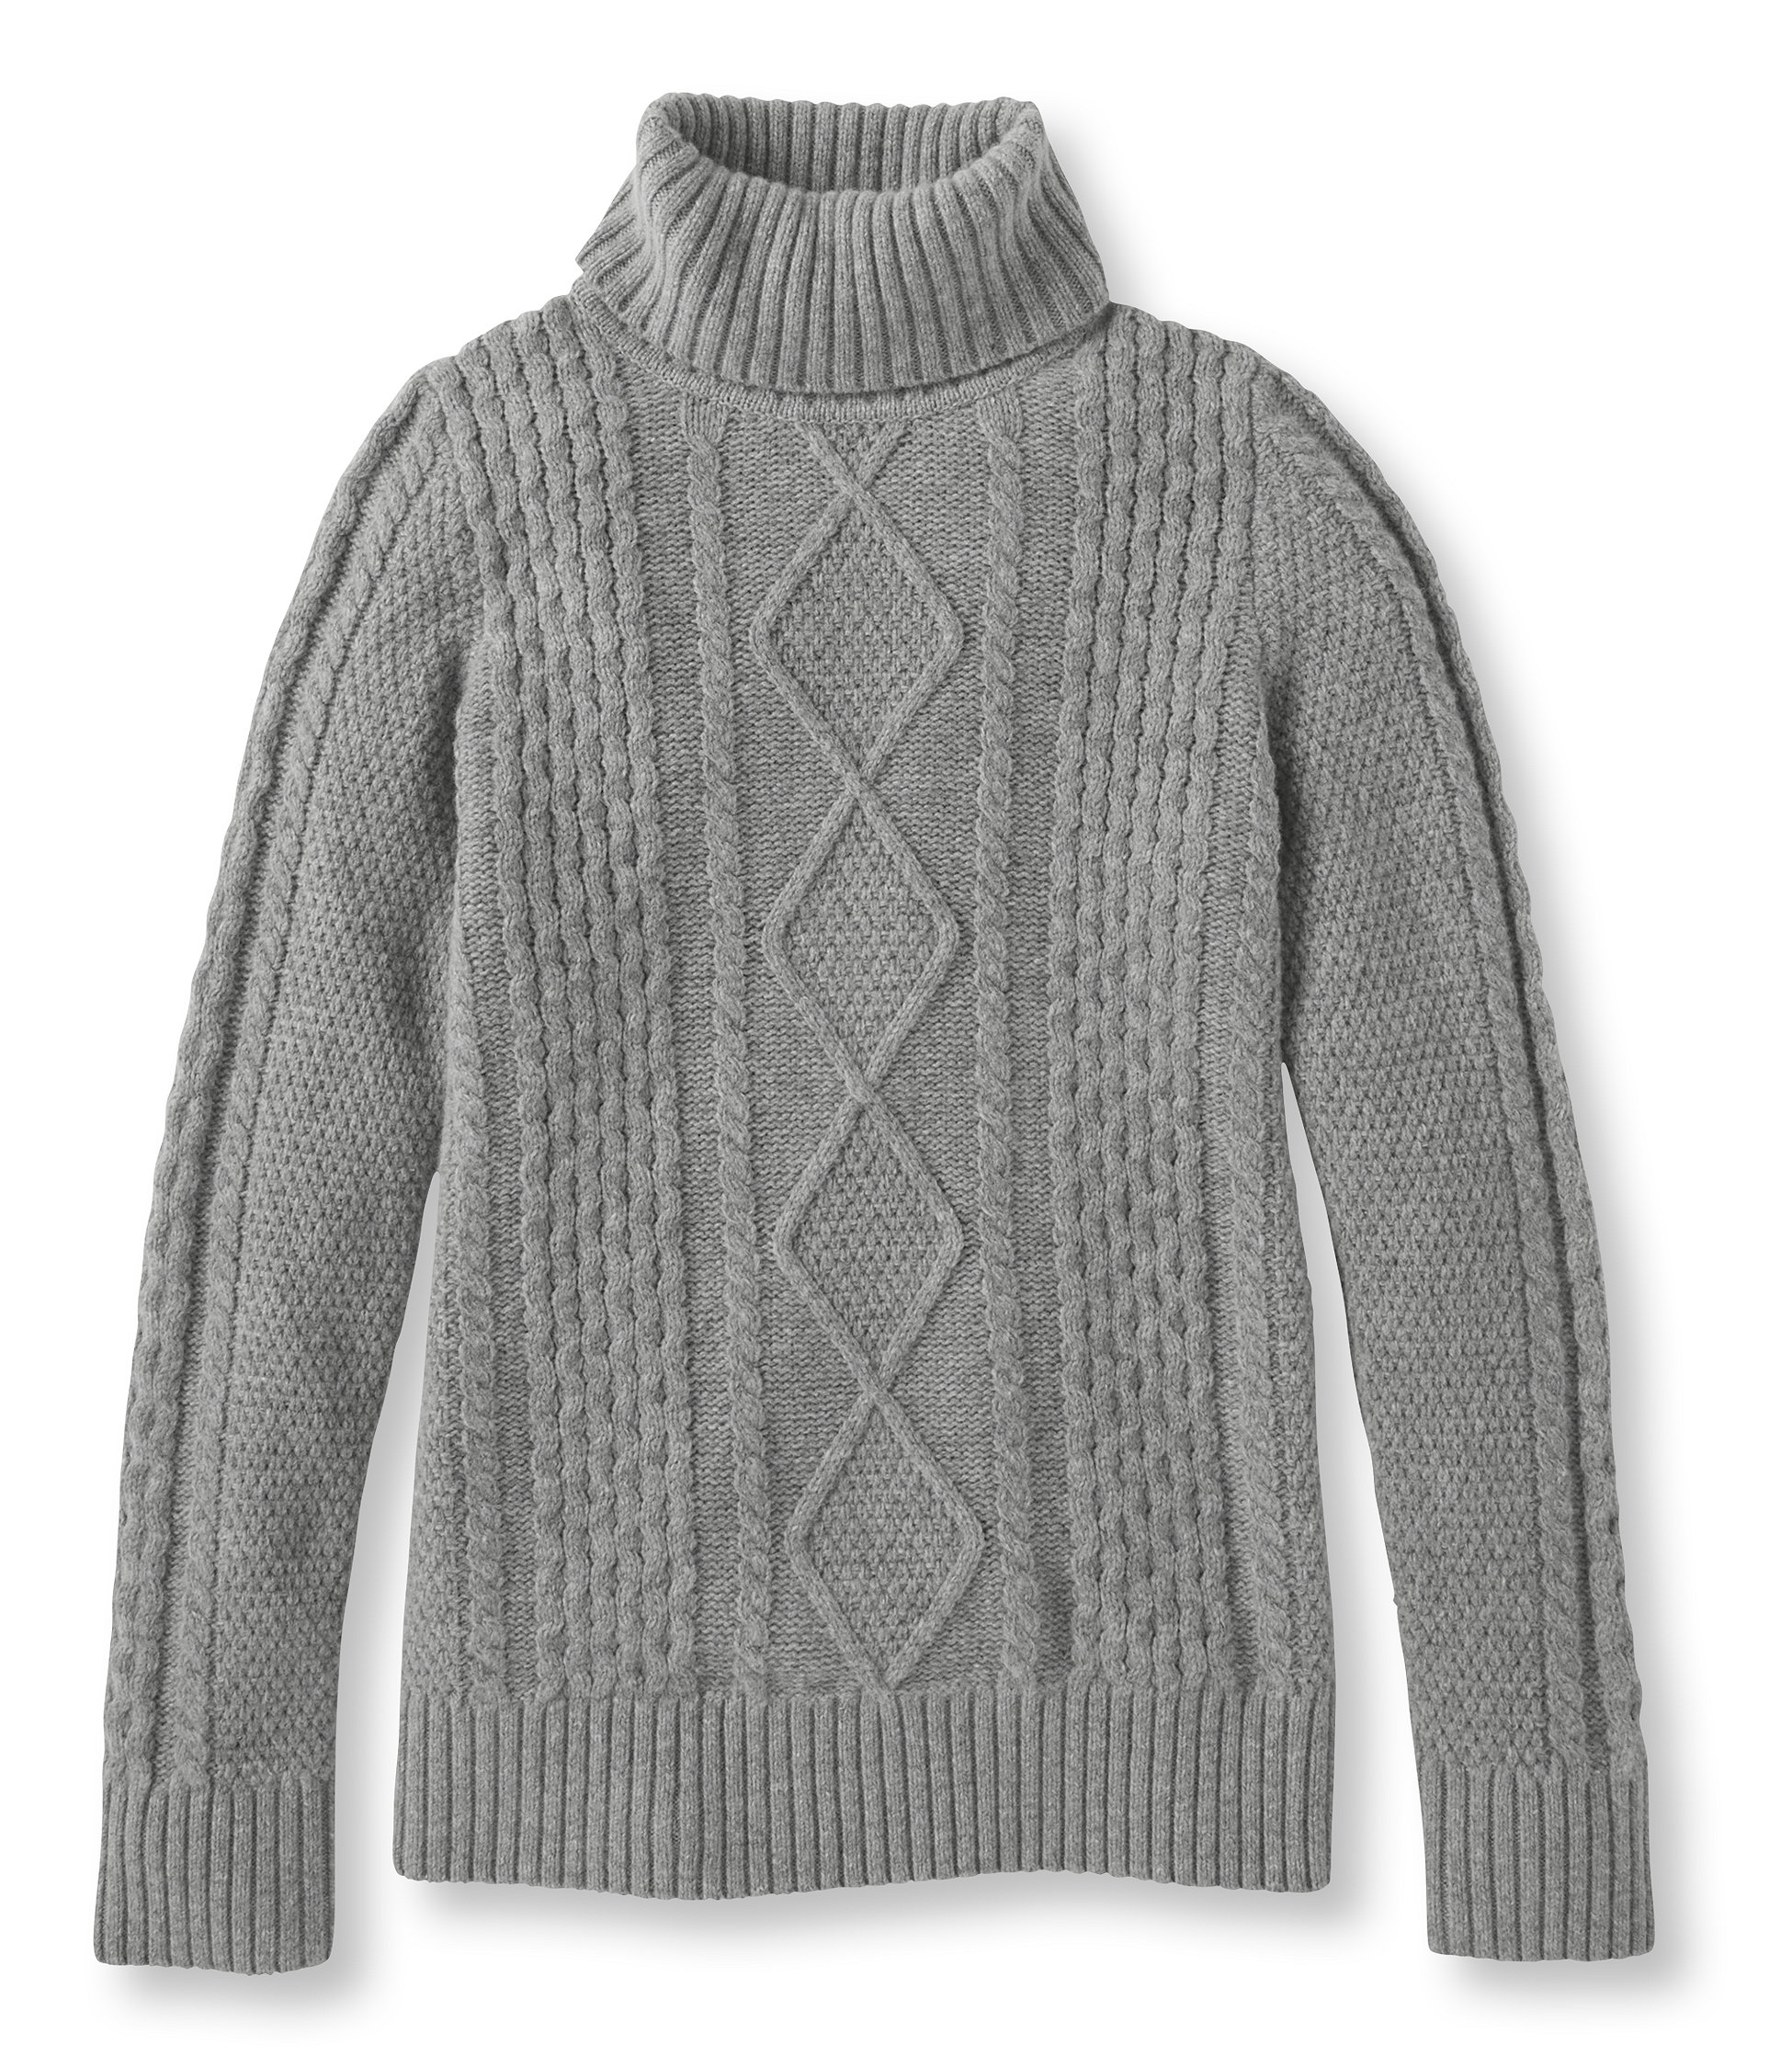 L.L.Bean Vintage Cable Turtleneck